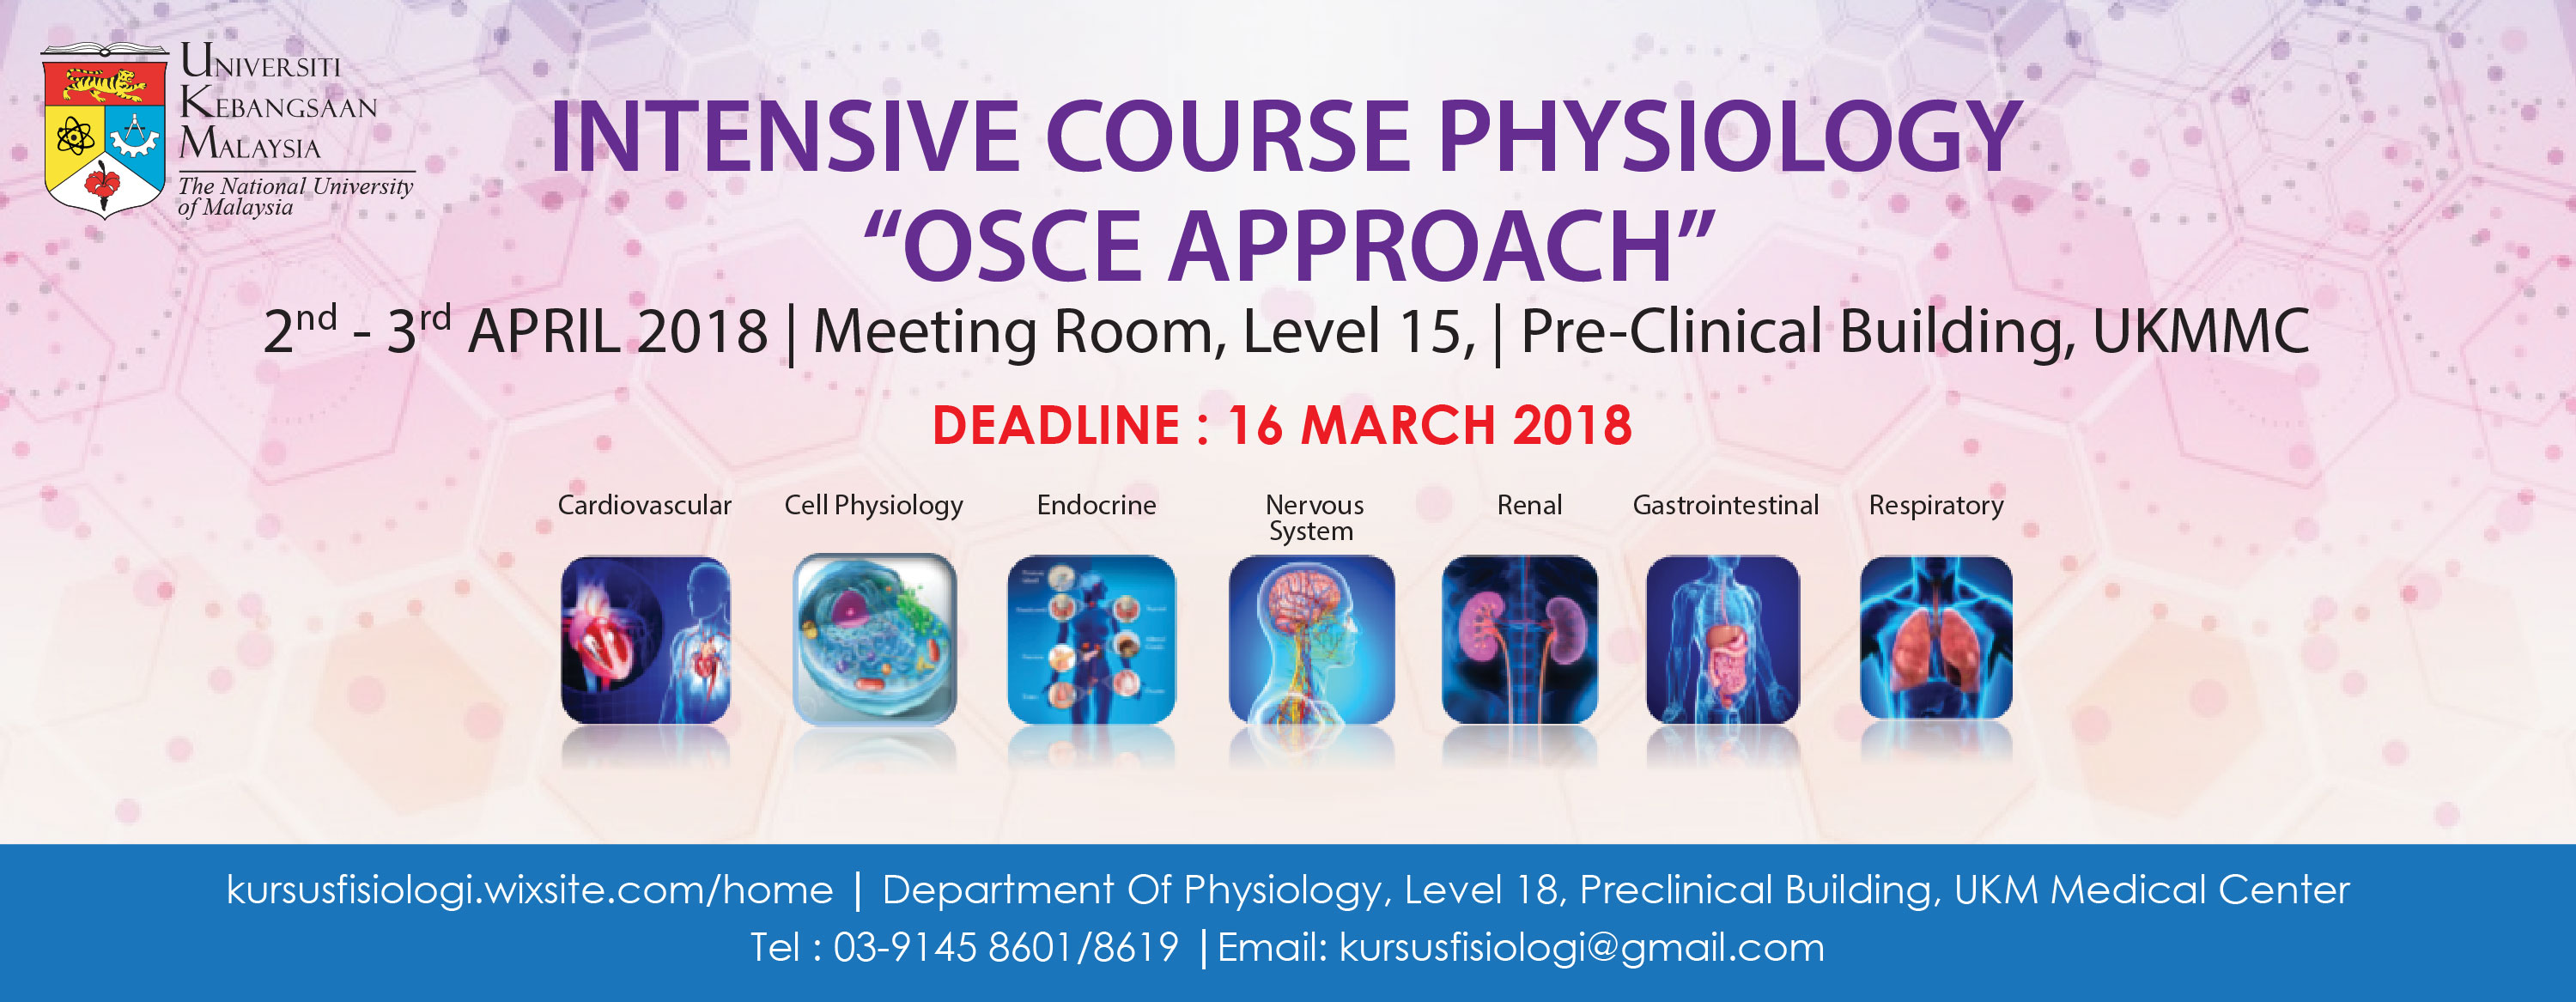 Intensive Course Physiology